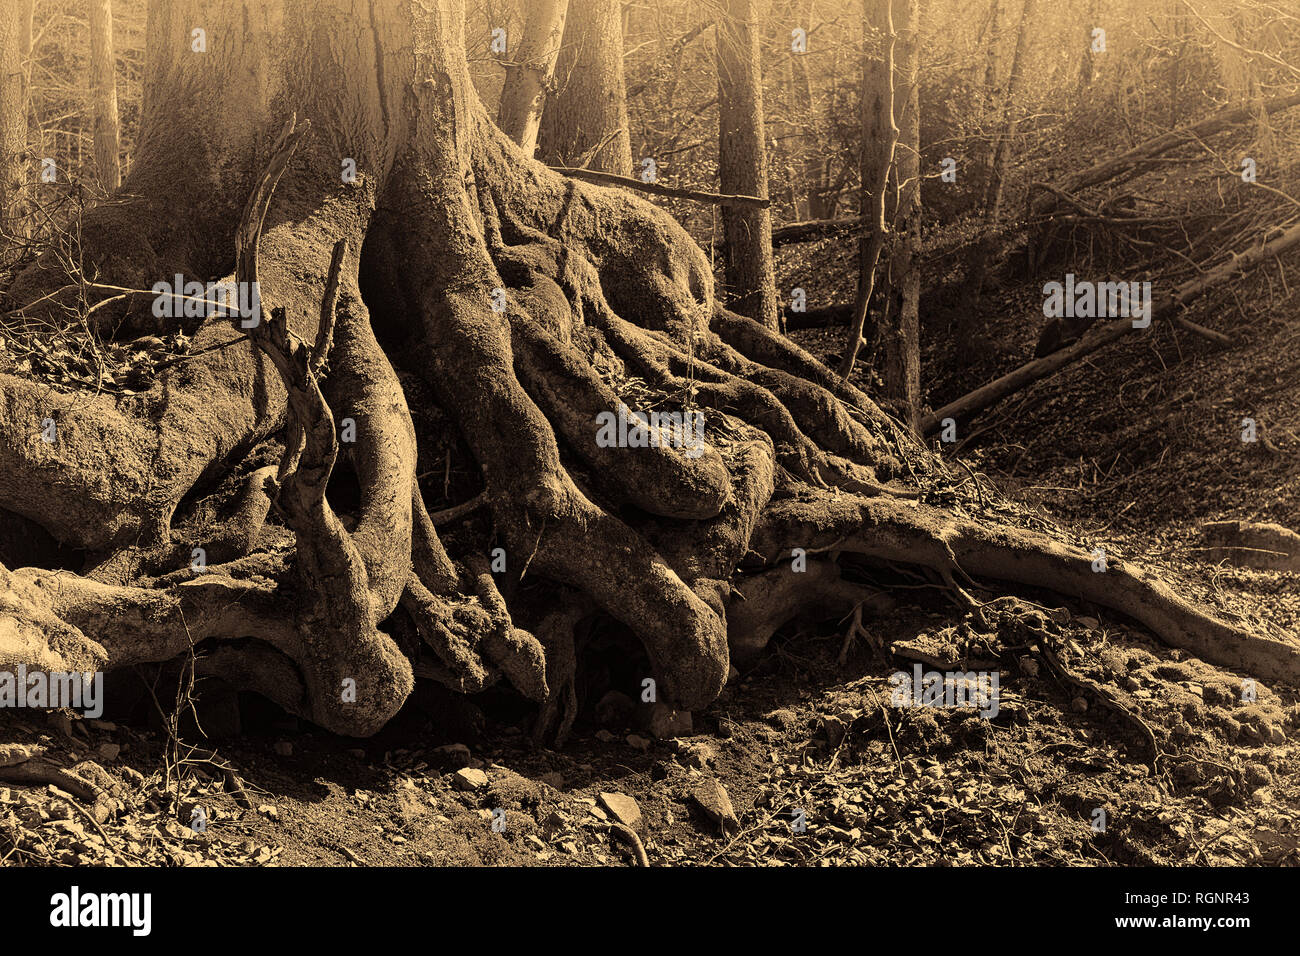 Surreal fairy tale fantasy image of gigantic roots of an old tree, covered with moss, mysterious forest - fantastic realism in nature, spooky,,vintage - Stock Image